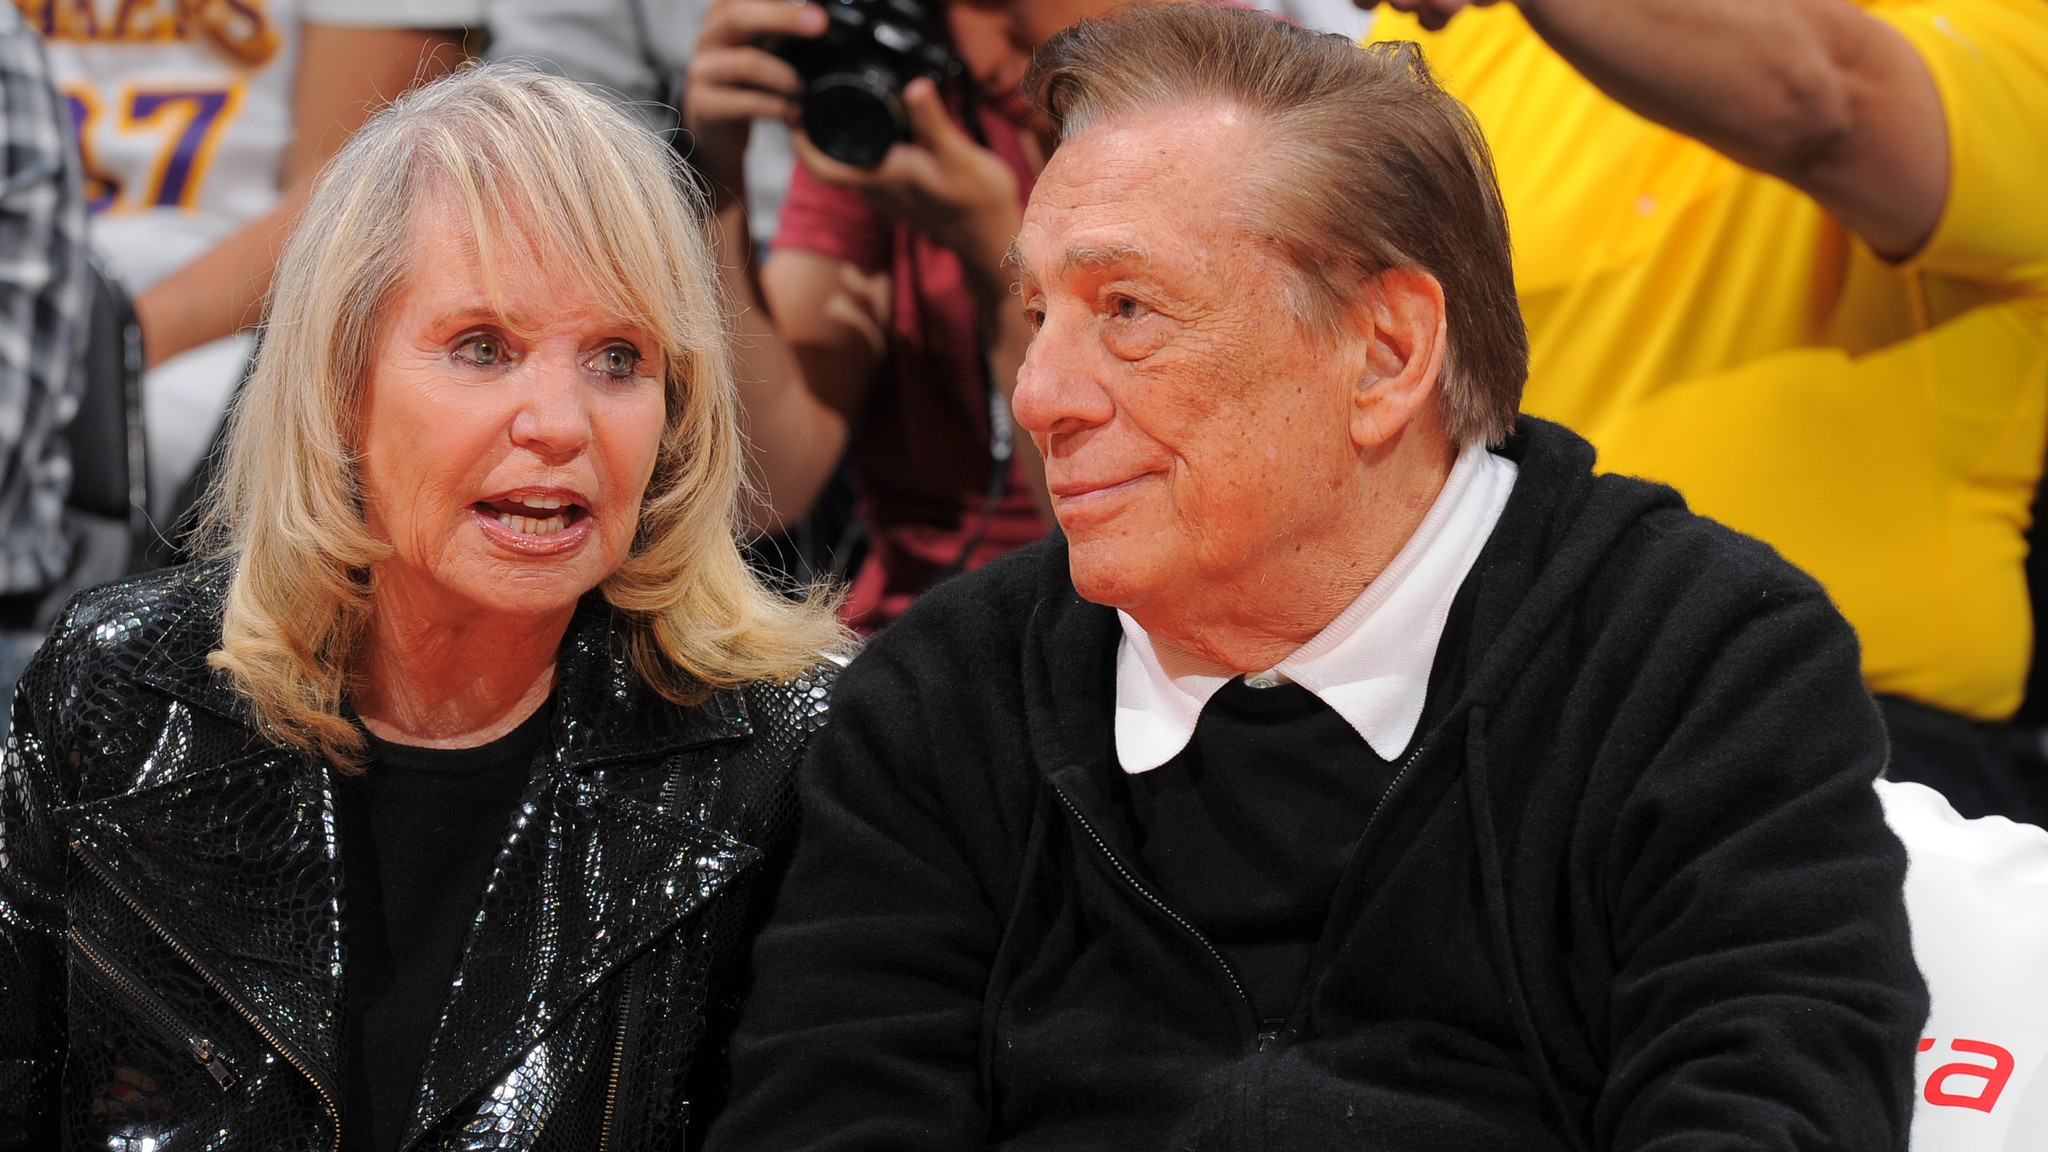 Donald Sterling opens third front in battle over Clippers ownership